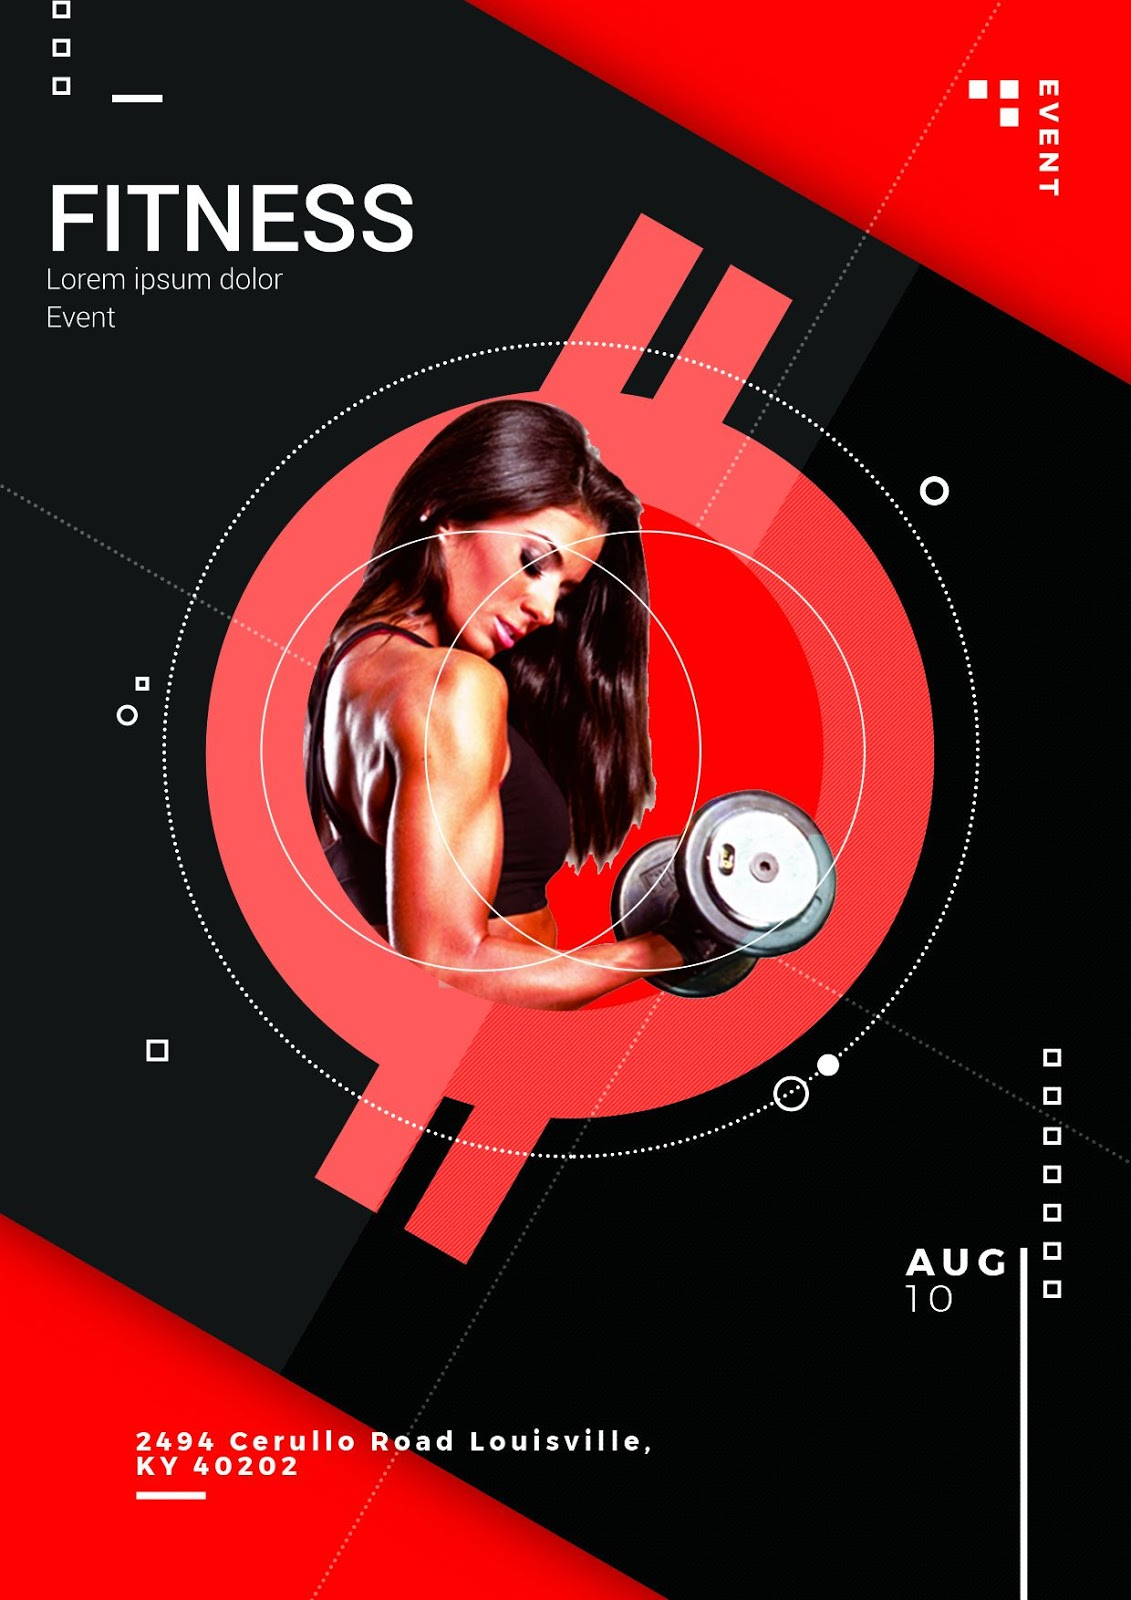 Fitness Event Flyer PSD Templates Download Free For Photoshop